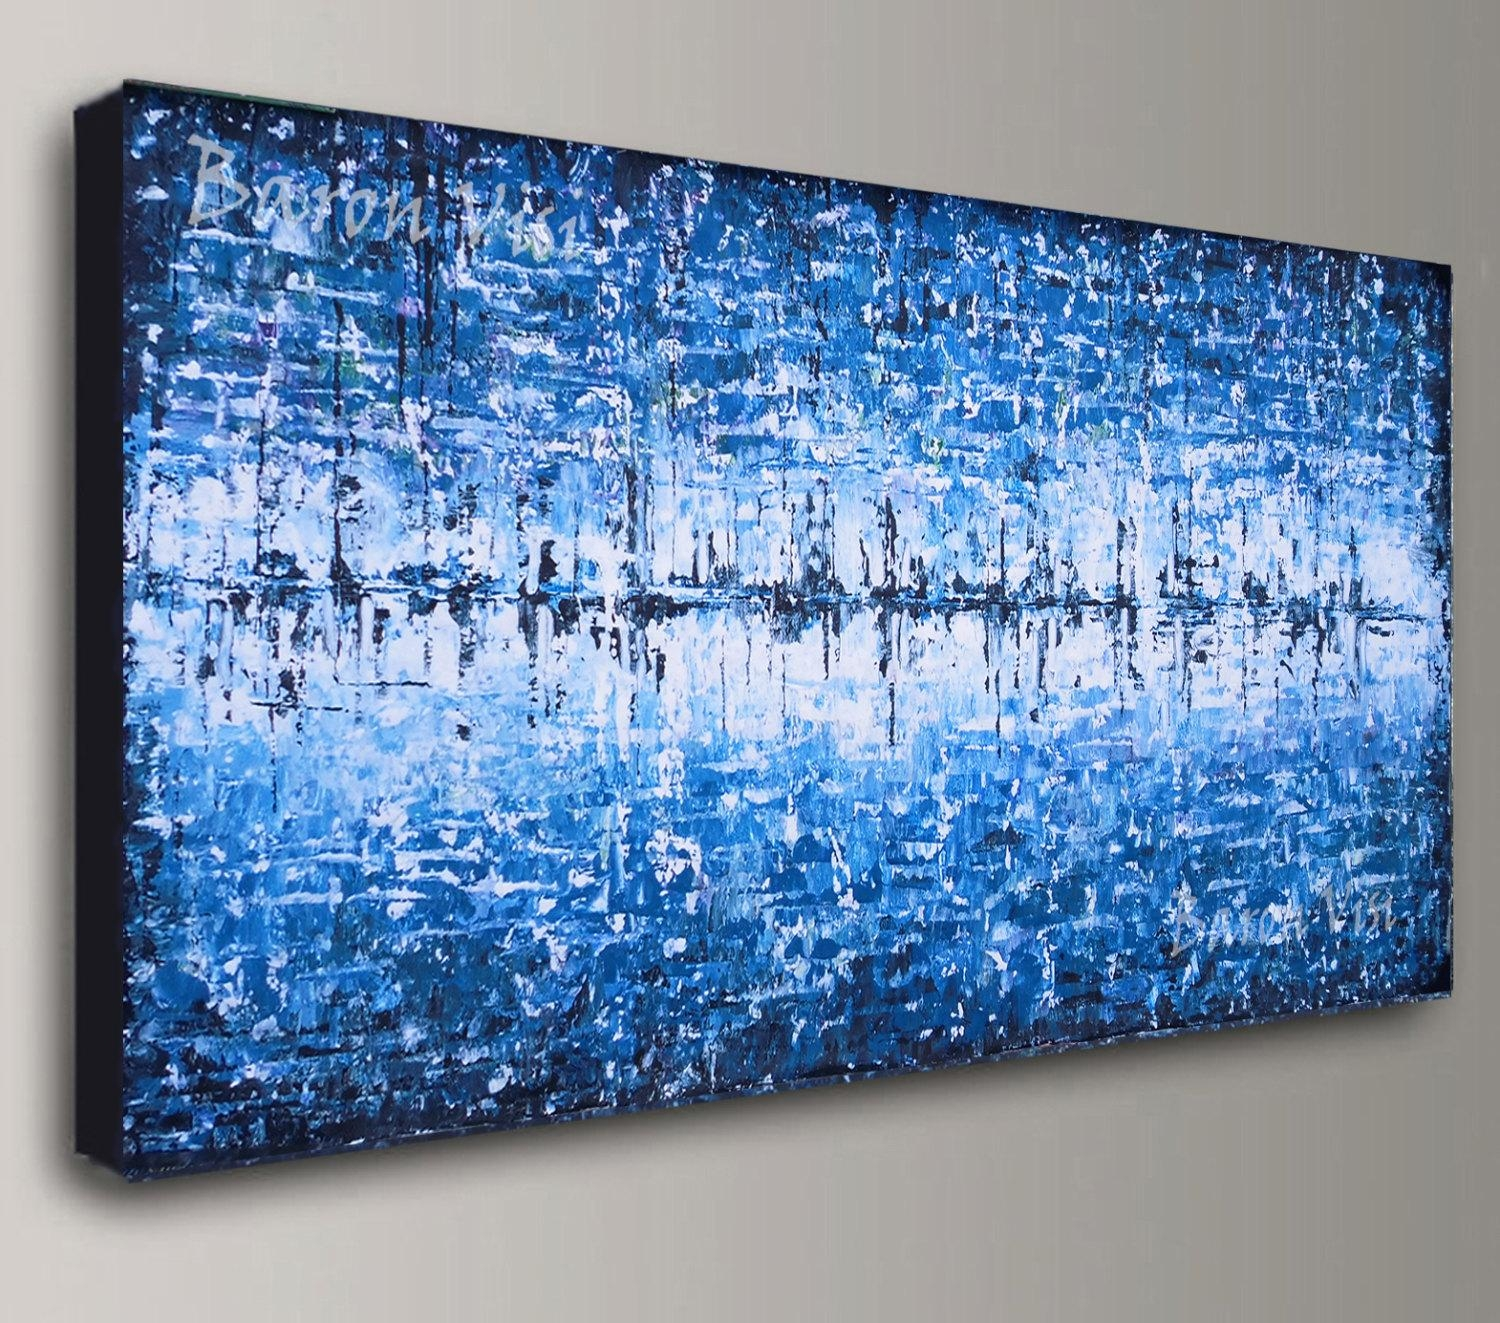 Blue Abstract Painting Acrylic Painting Art Painting White For Blue And White Wall Art (Image 4 of 20)